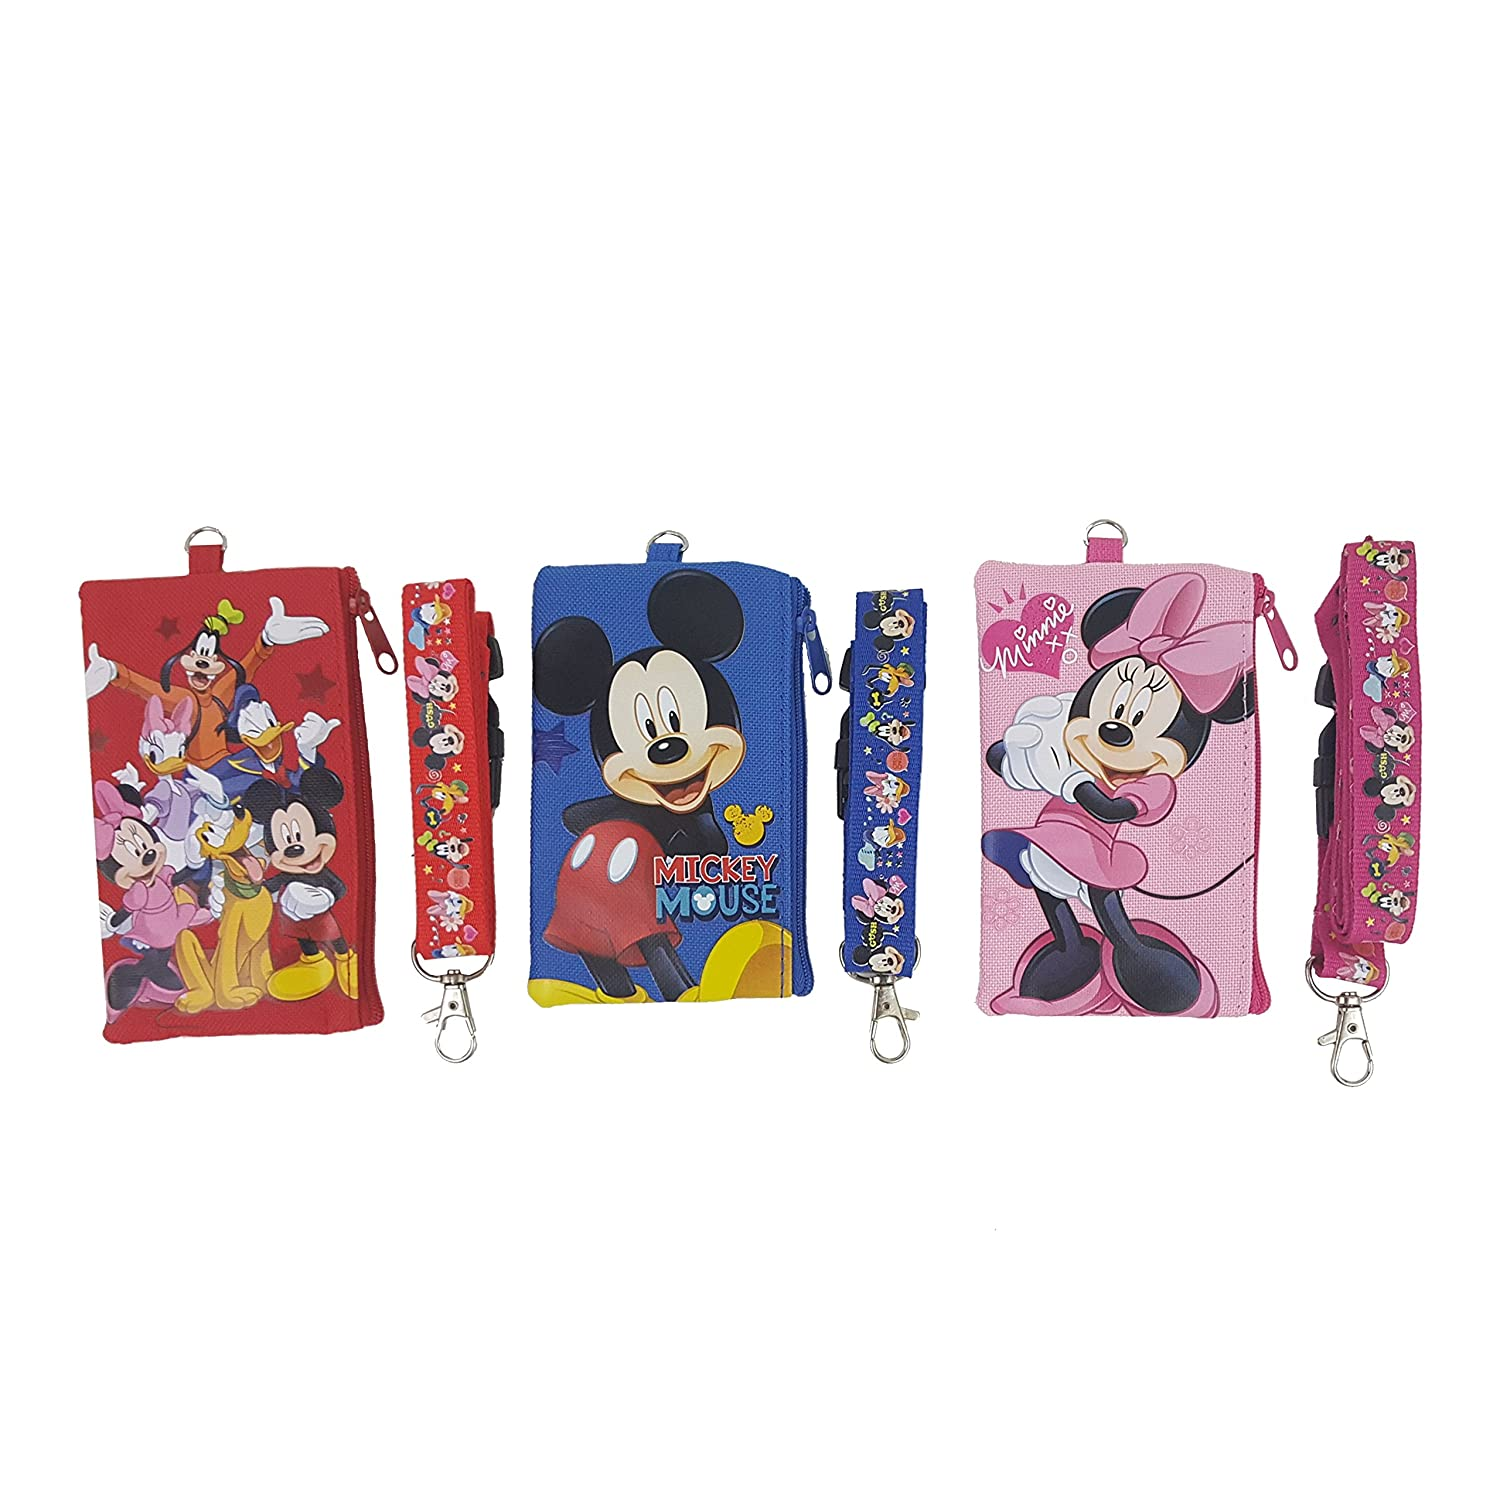 1 X Disney Set of 3 Mickey and Friends Lanyards with Detachable Coin Purse by Unknown USA